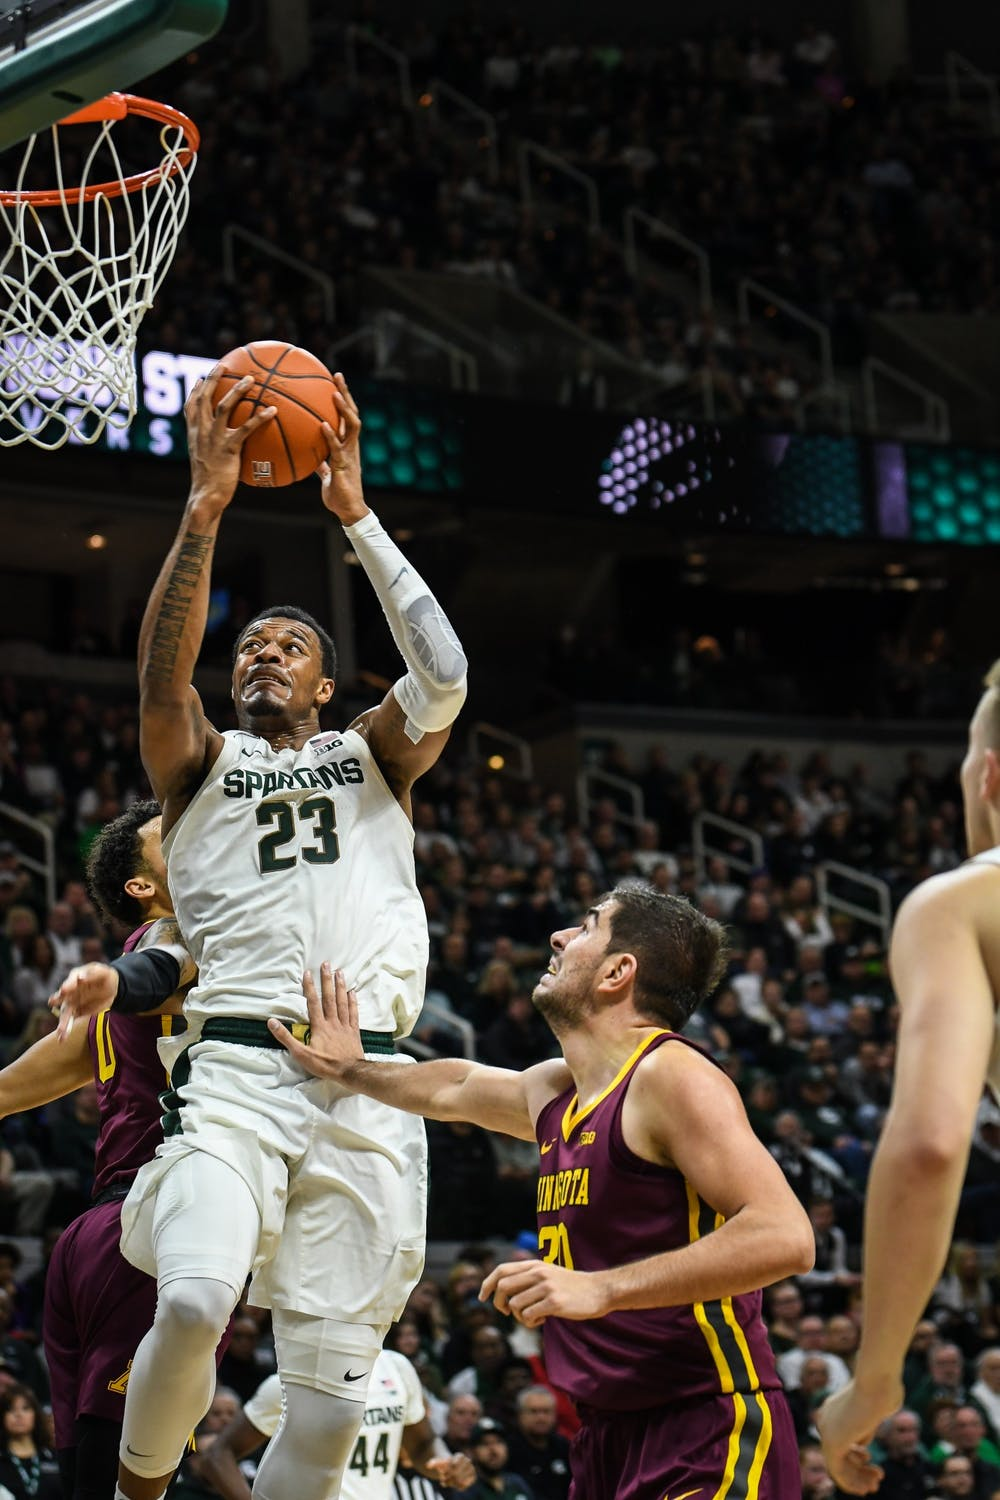 <p>Junior forward Xavier Tillman (23) makes a layup during the game against Minnesota at the Breslin Center on Jan. 9, 2020. The Spartans defeated the Golden Gophers 74-58.</p>